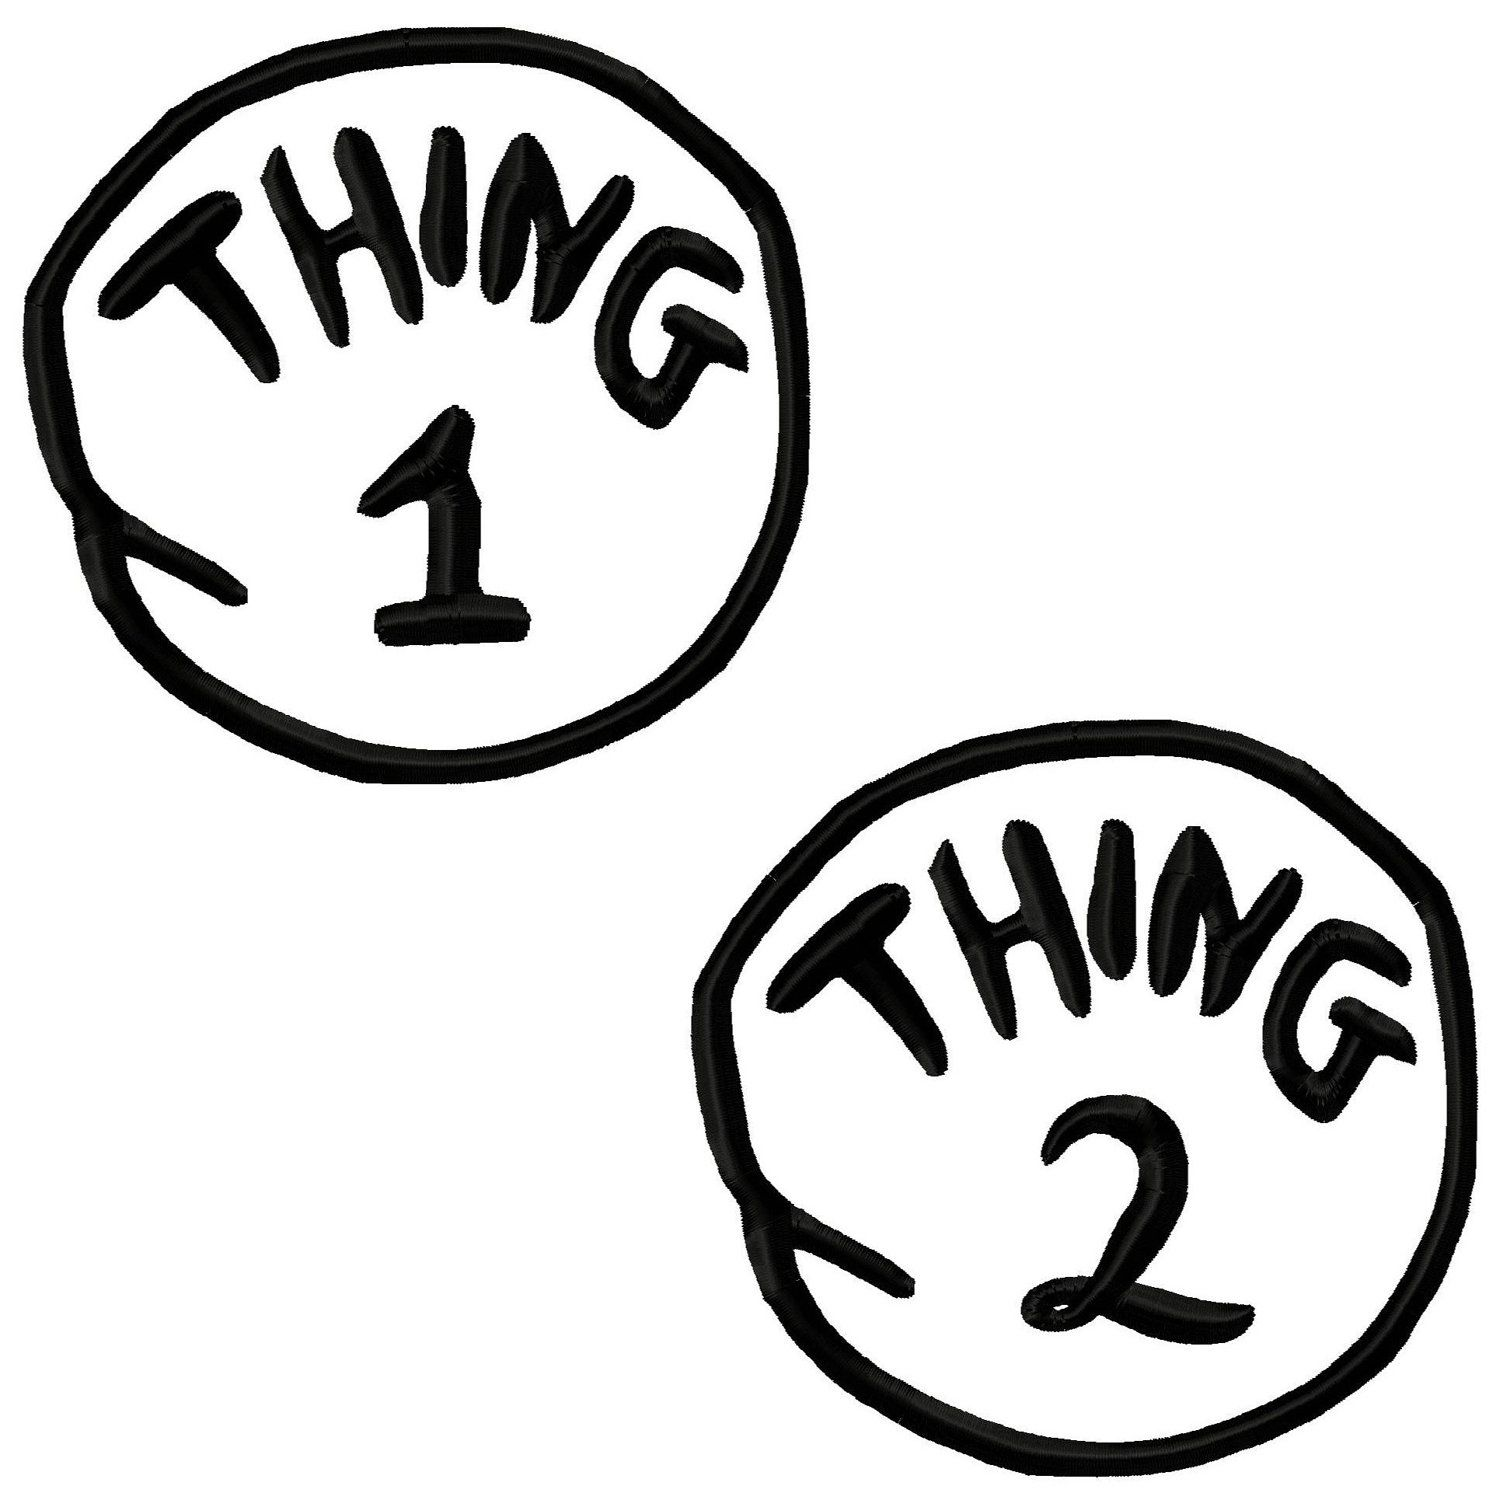 graphic regarding Thing 2 Logo Printable called Pin upon sbook things